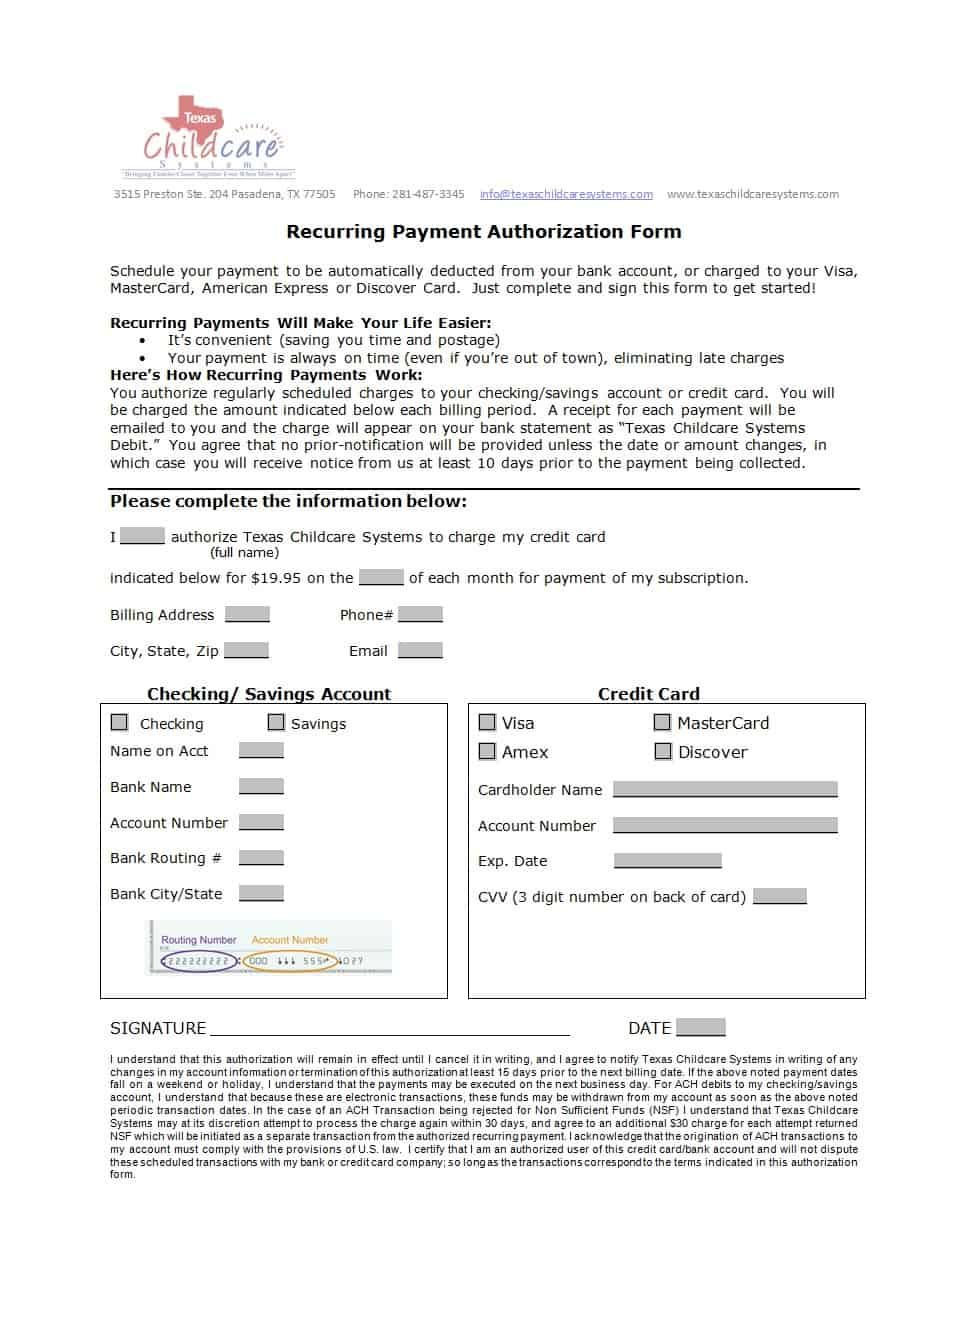 41 Credit Card Authorization Forms Templates Ready To Use Inside Authorization To C Card Template Medical Business Card Professional Business Cards Templates